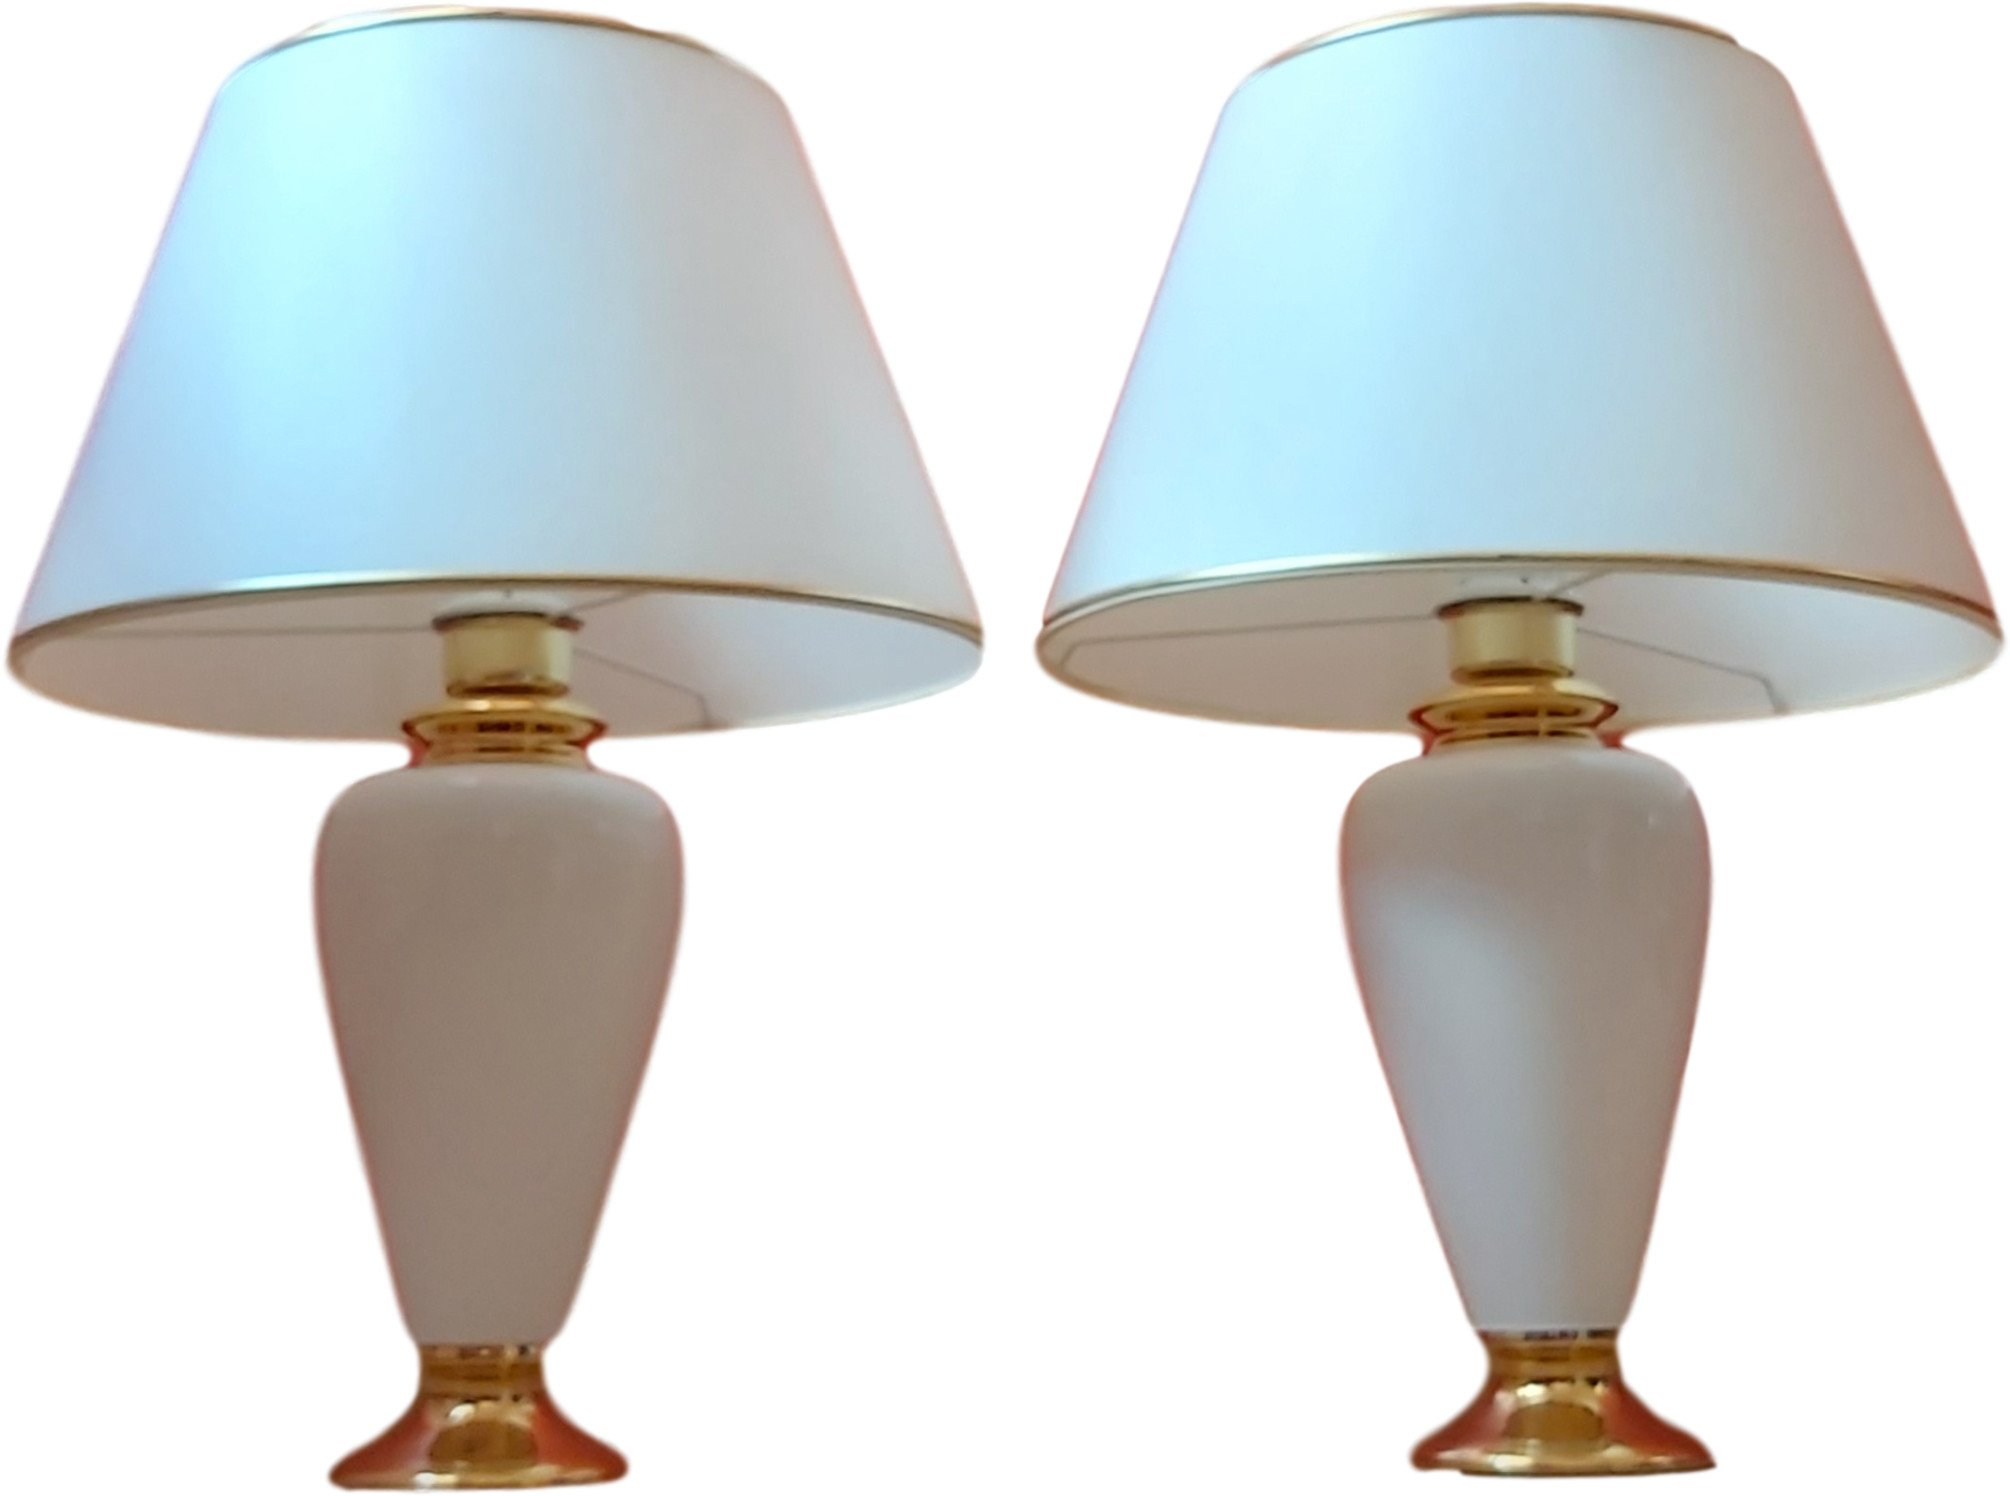 Pair of Table Lamps, Germany, 1980s